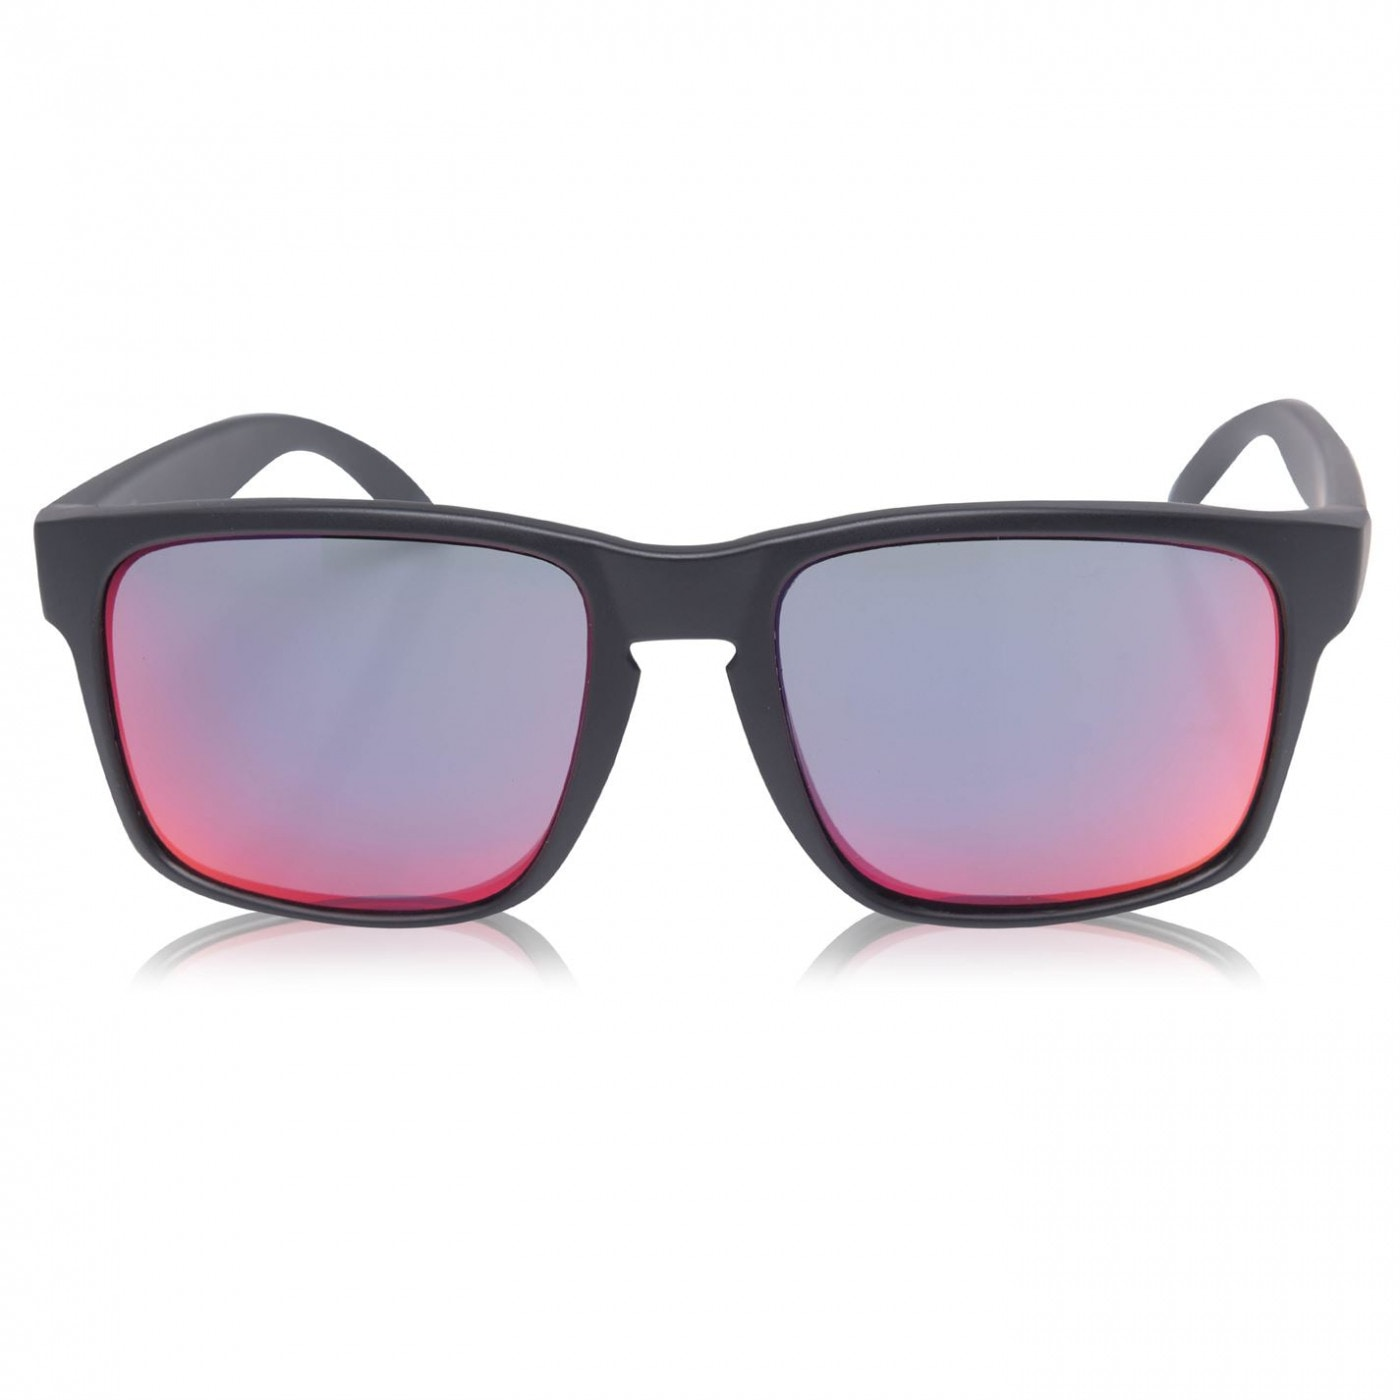 Puma 57 Sunglasses Mens